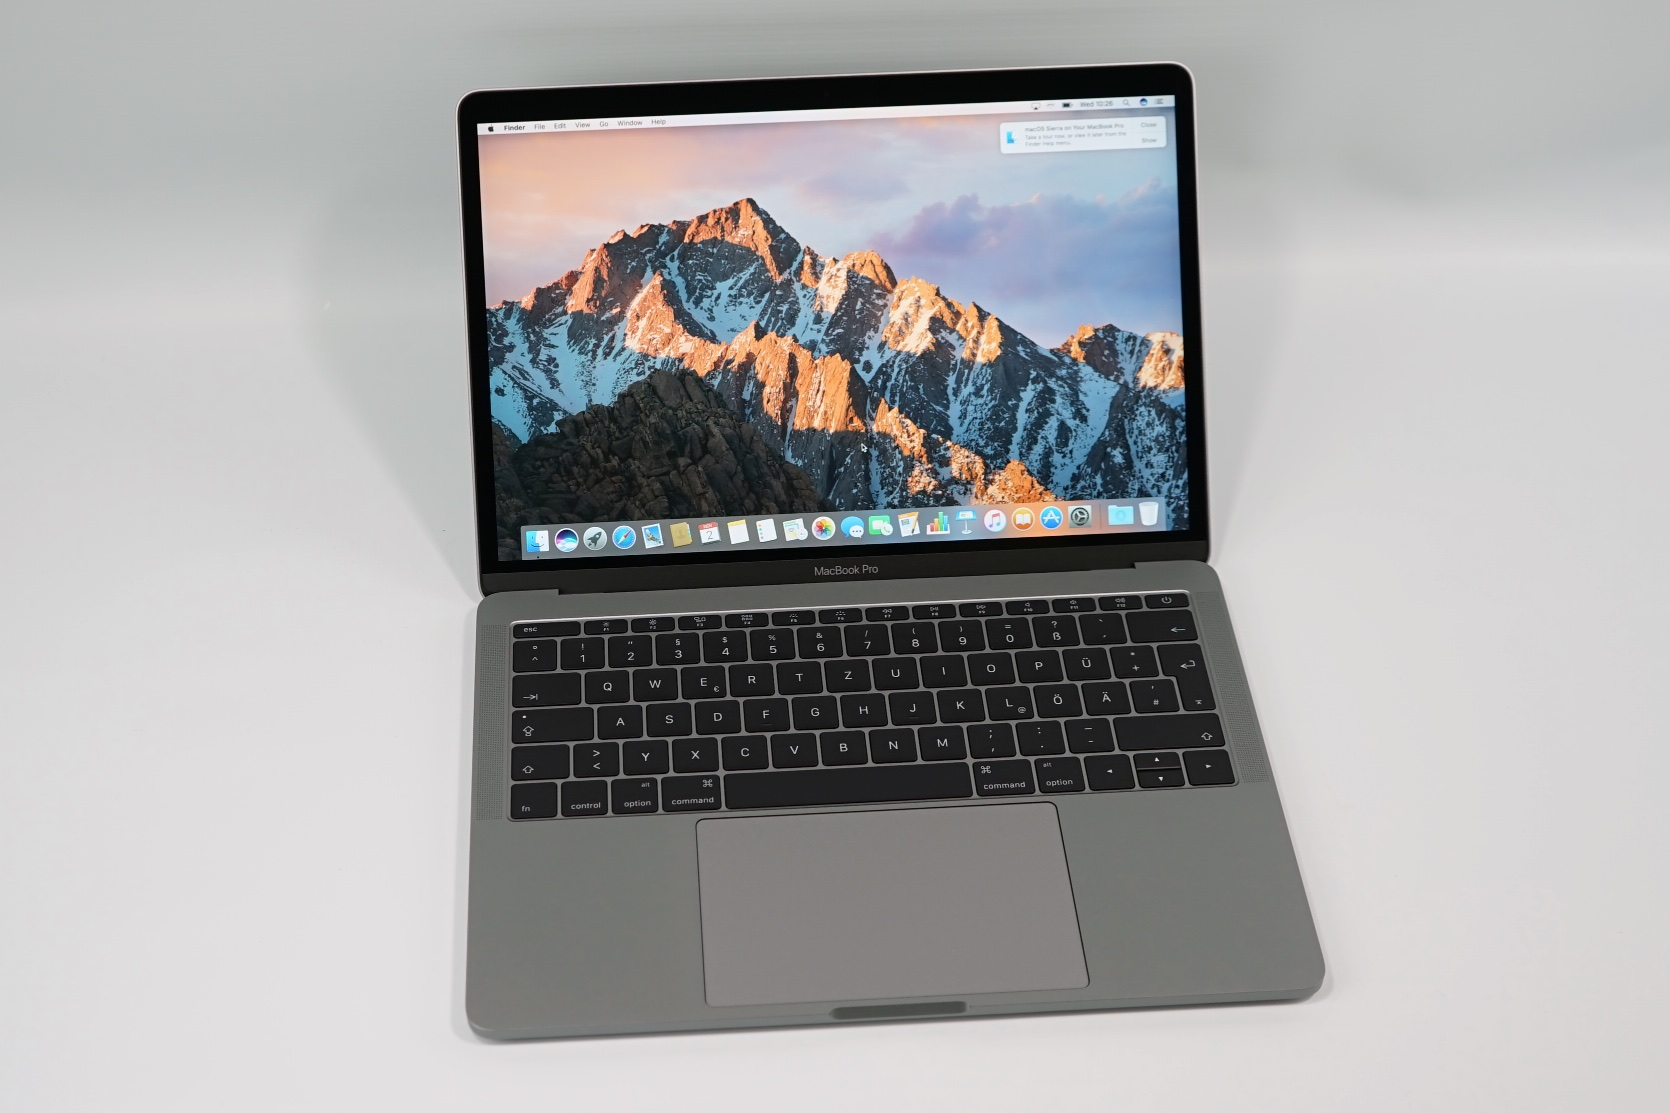 macbook pro 13 retina test